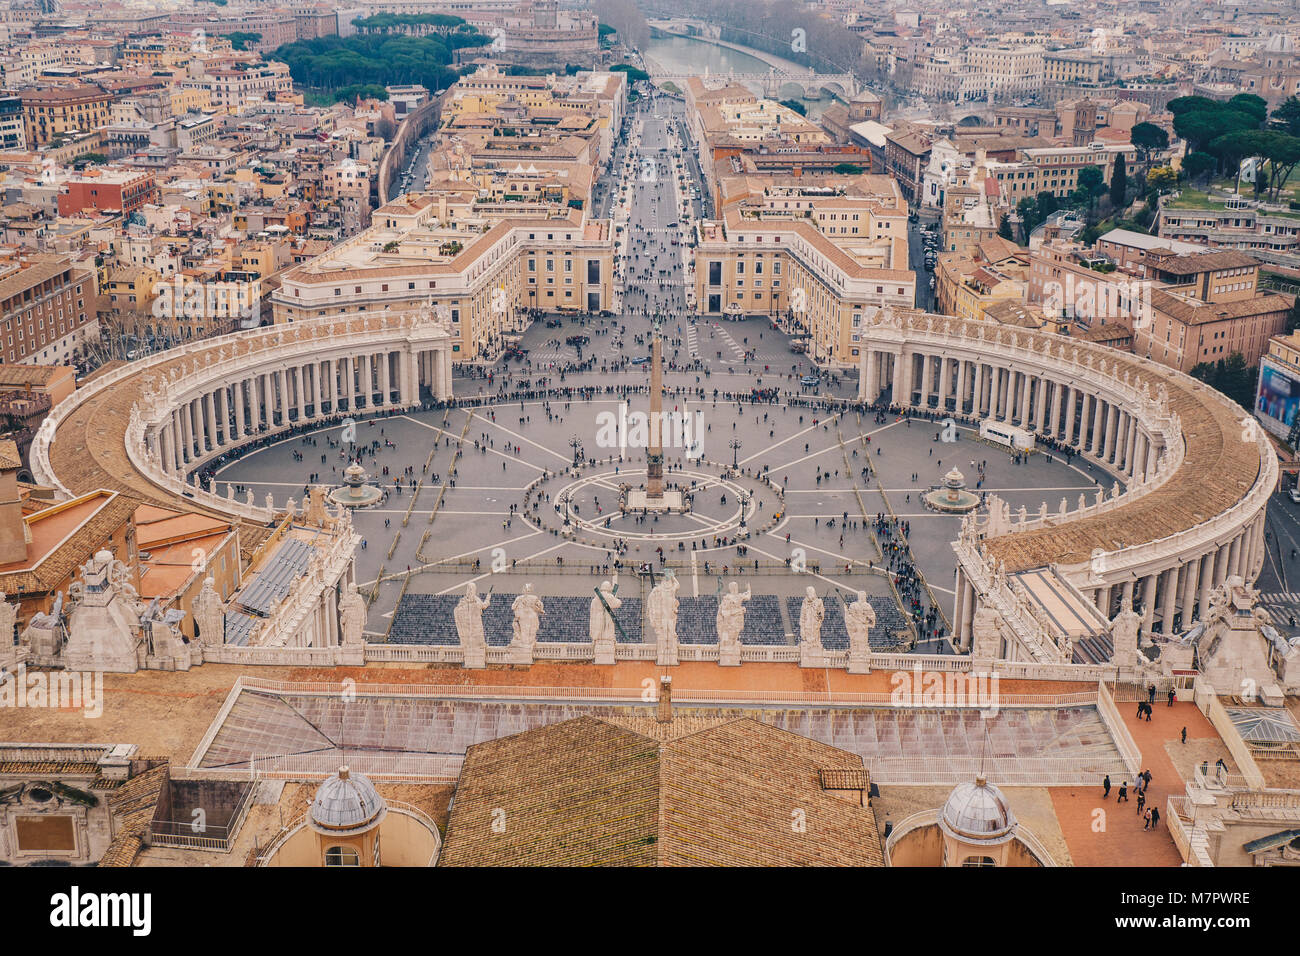 Rome Saint Peters square as seen from above aerial view in Rome, Italy - Stock Image